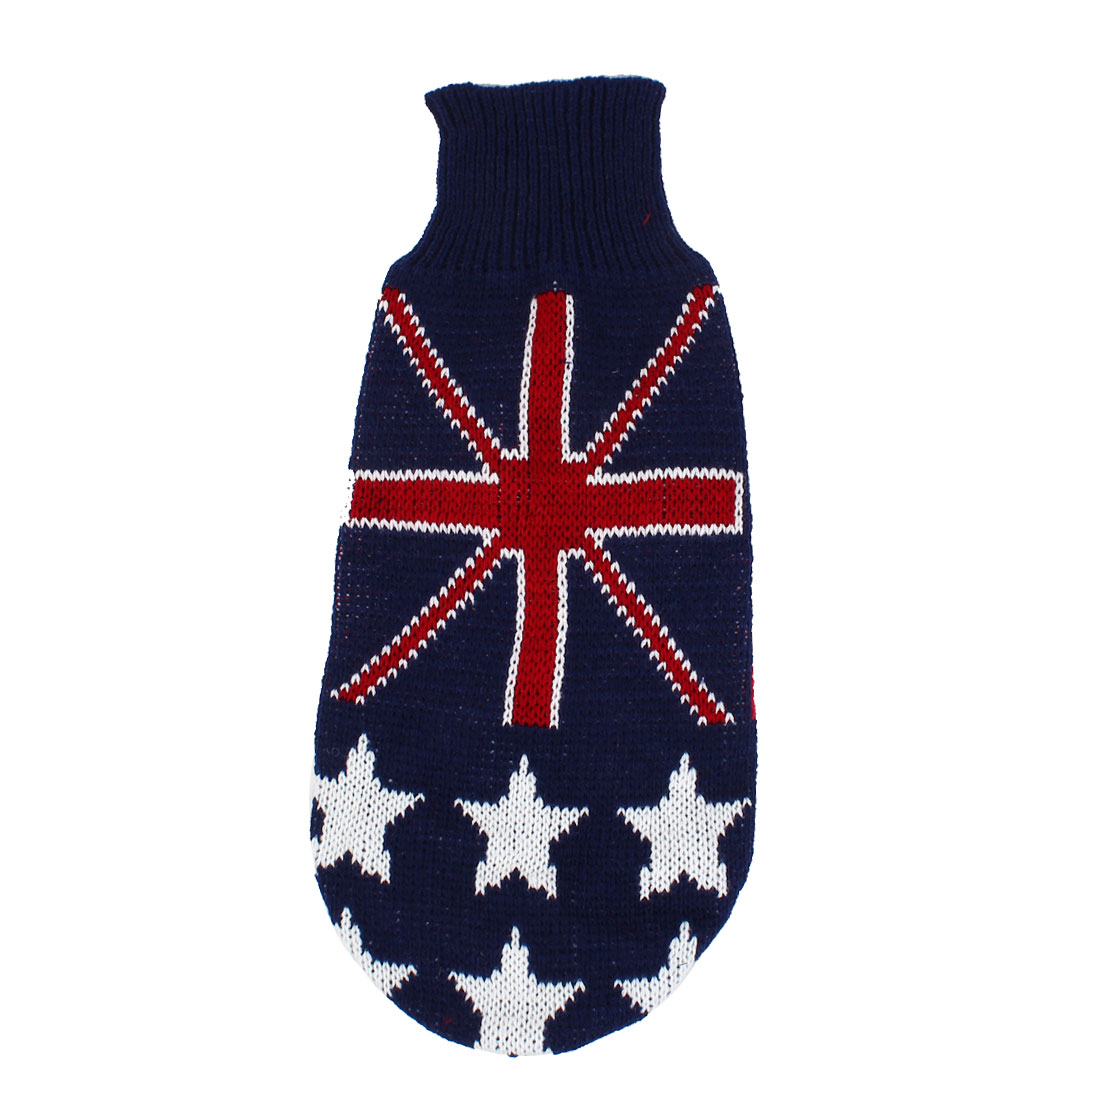 Pet Dog Puppy Flag Print Ribbed Cuff Knitwear Turtleneck Apparel Sweater Dark Blue Red White Size M